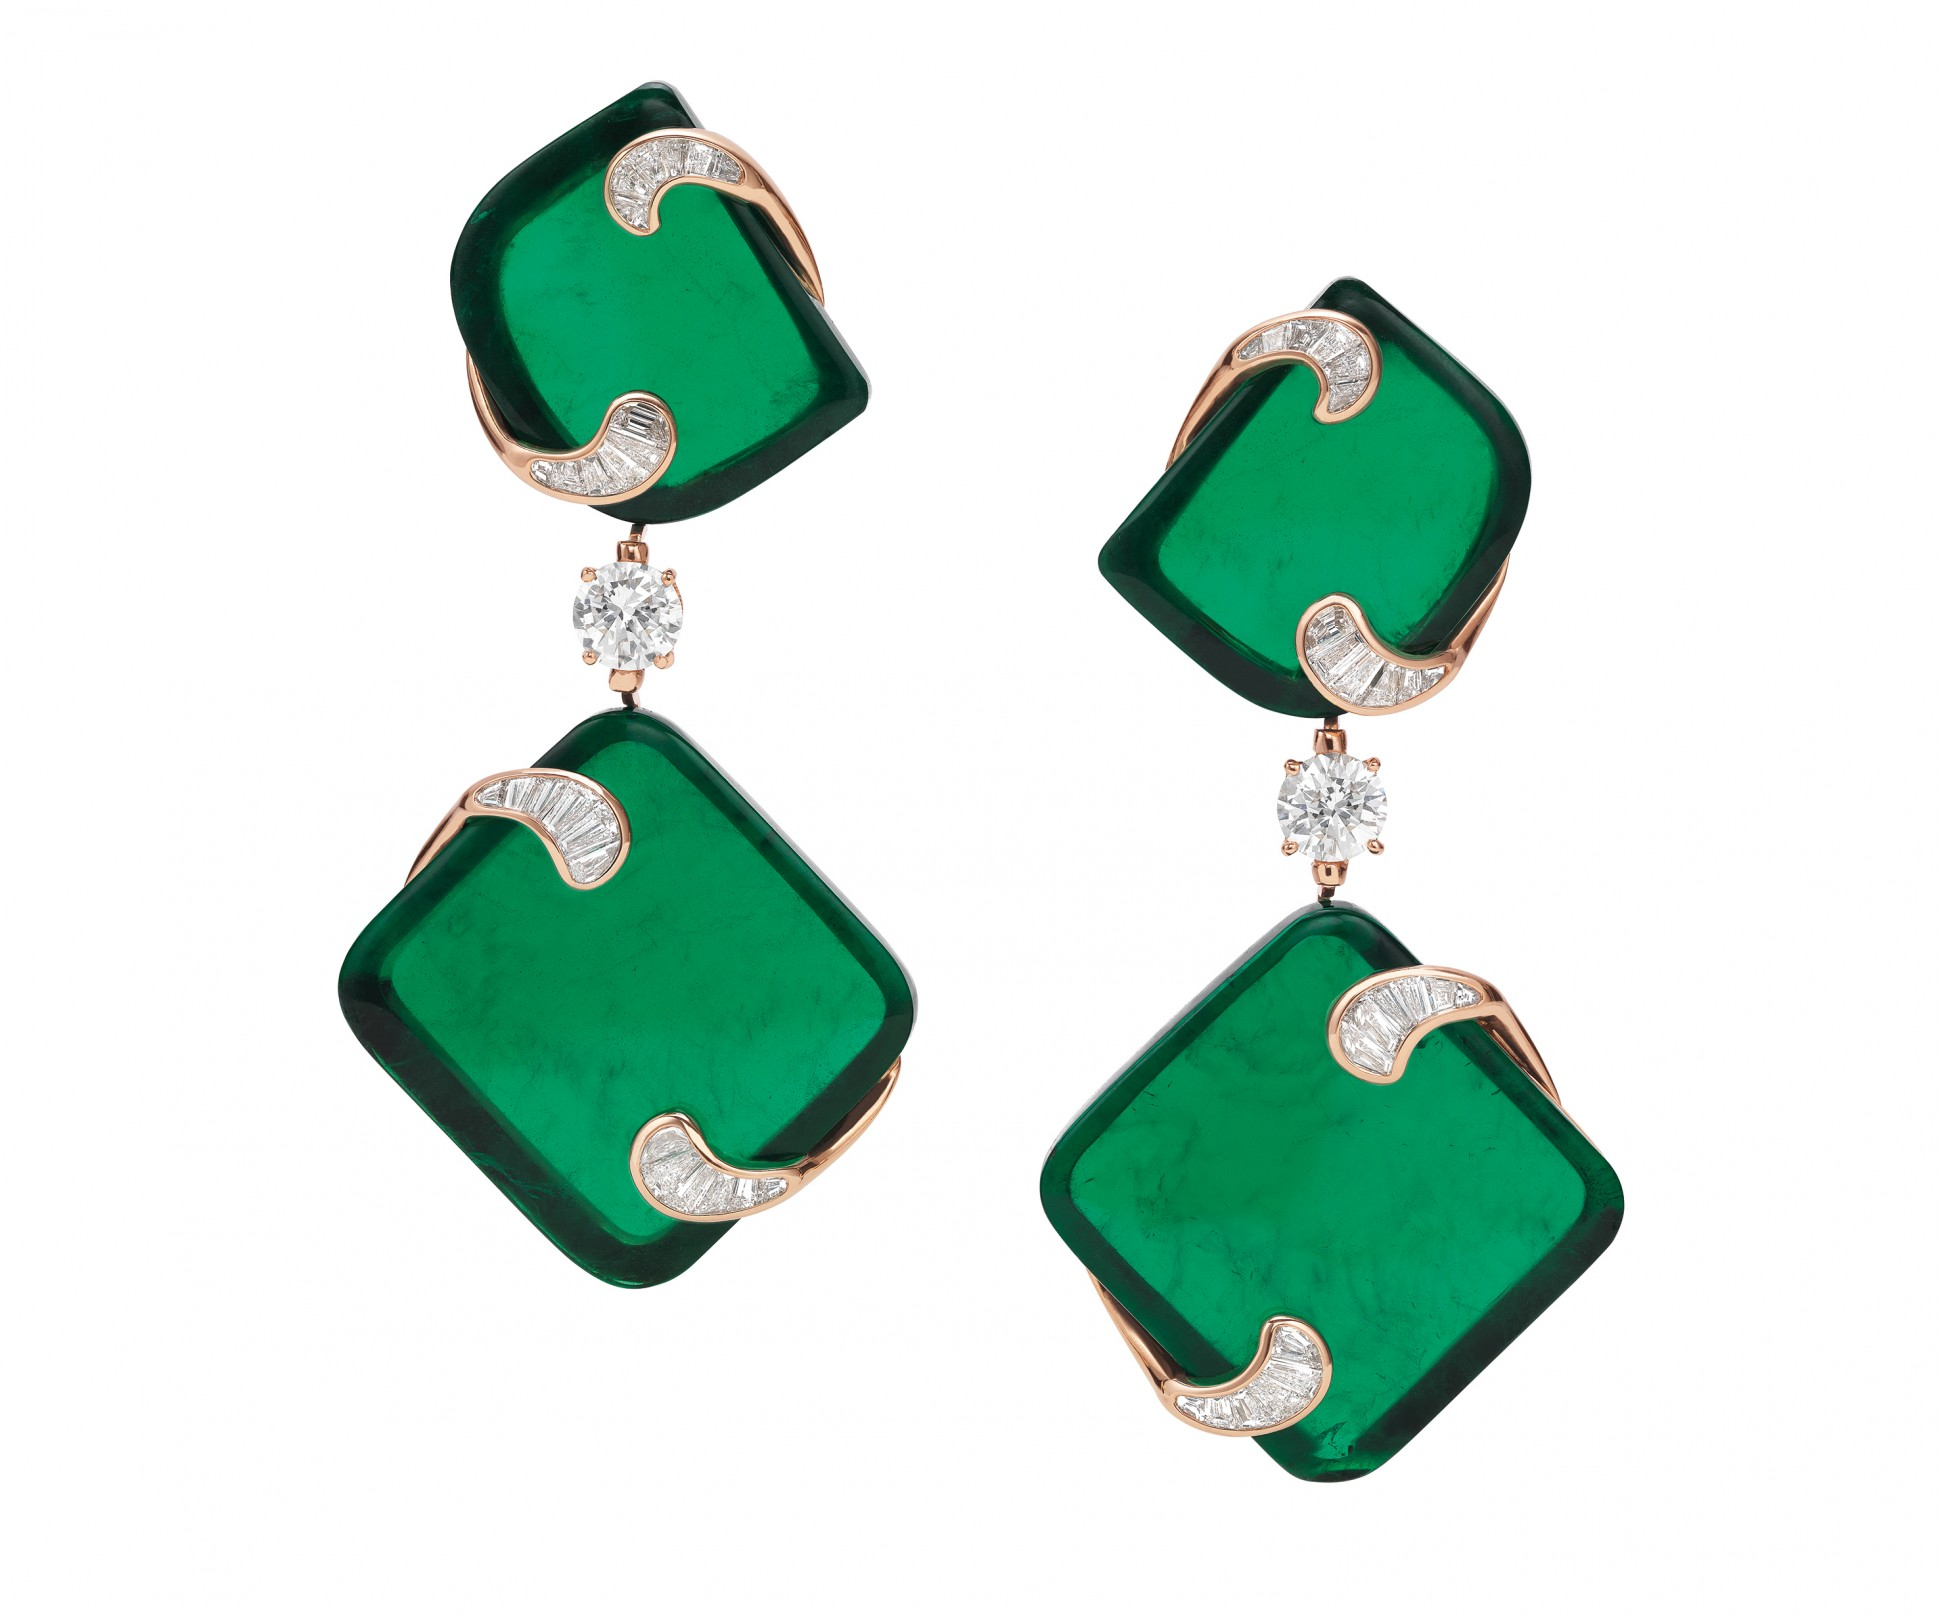 "The ""Hidden Treasures"" earrings, inspired by the geometric designs of sculpted evergreens, consist of two fancy cut Zambian emeralds for each jewel. The four stones together weigh 143.1 carats. They were extracted from a single 400-carat rough stone."